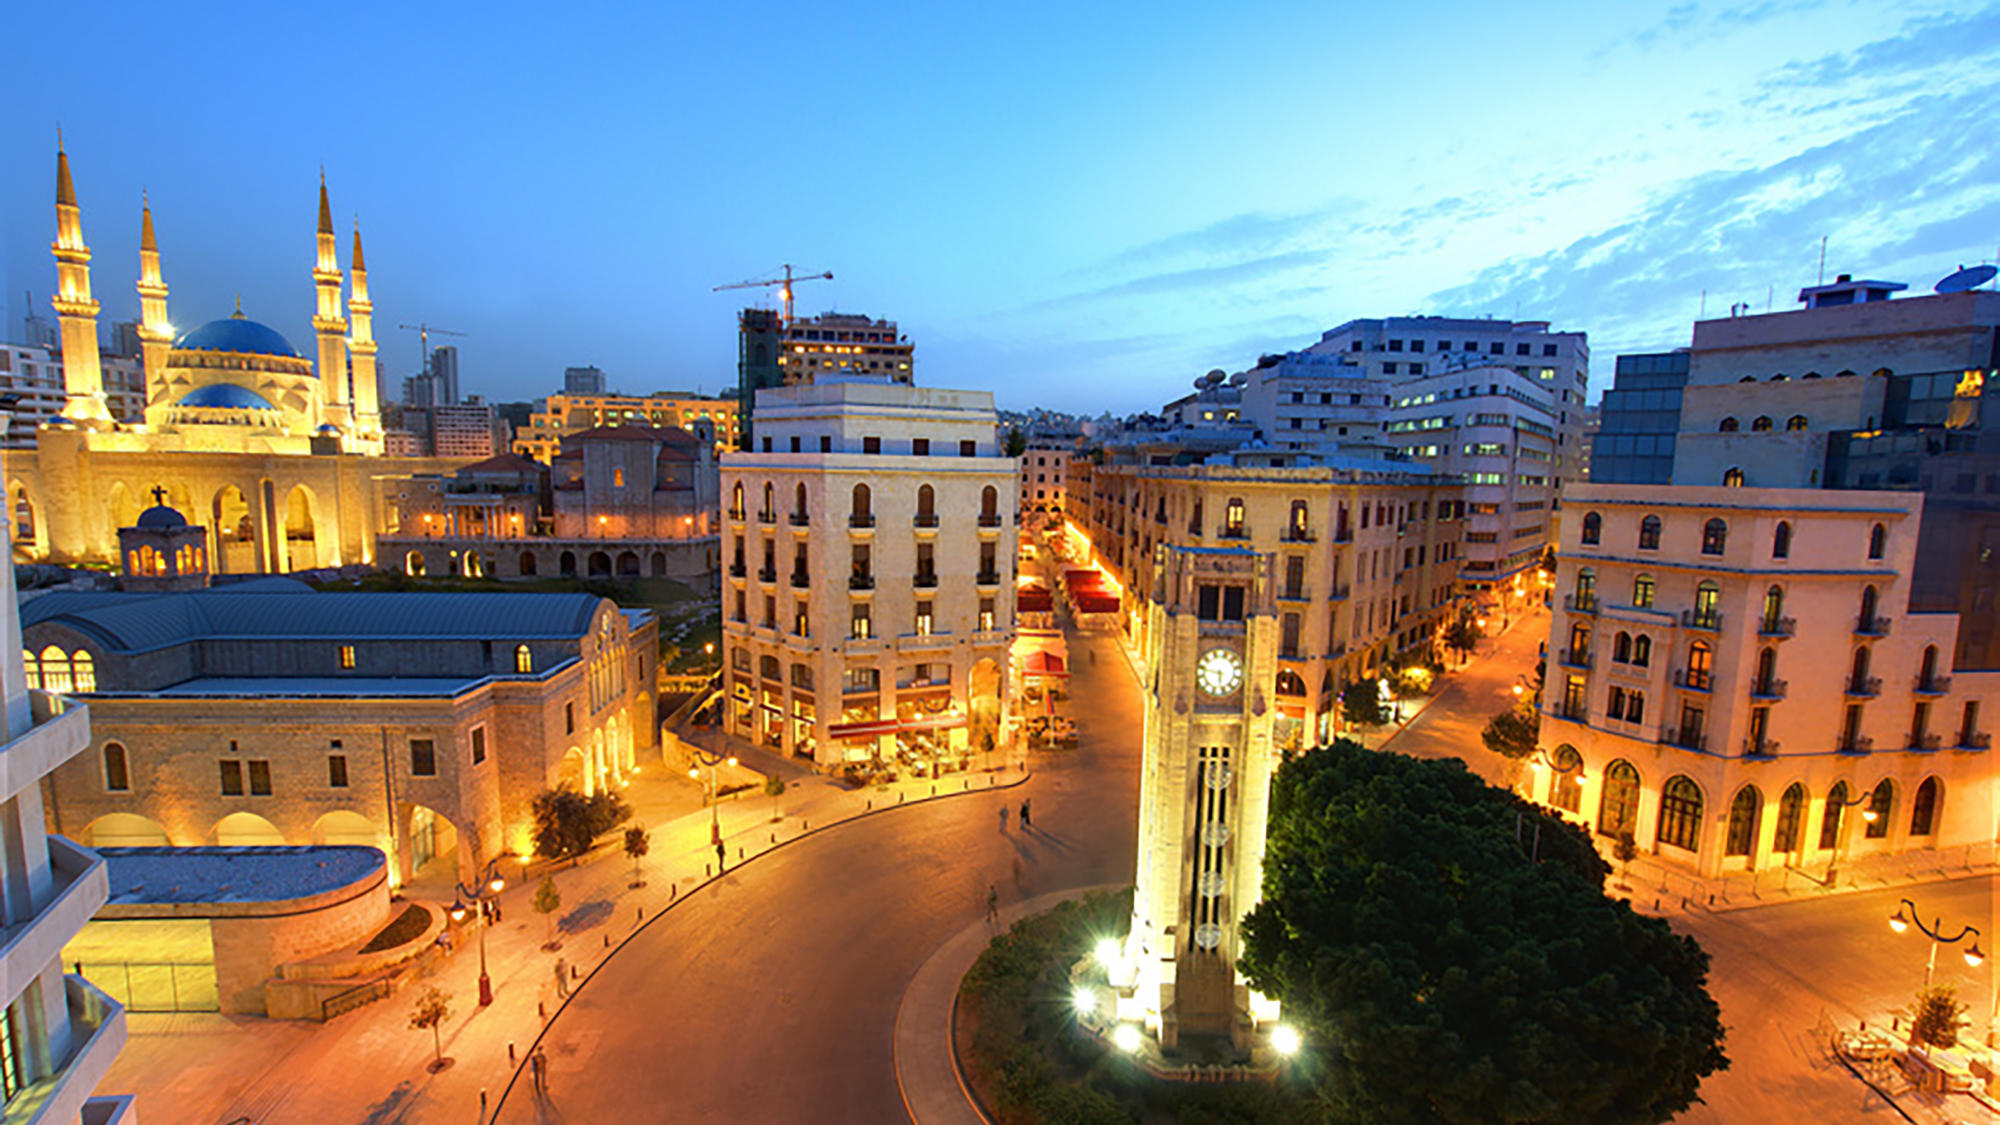 beirut mosquee